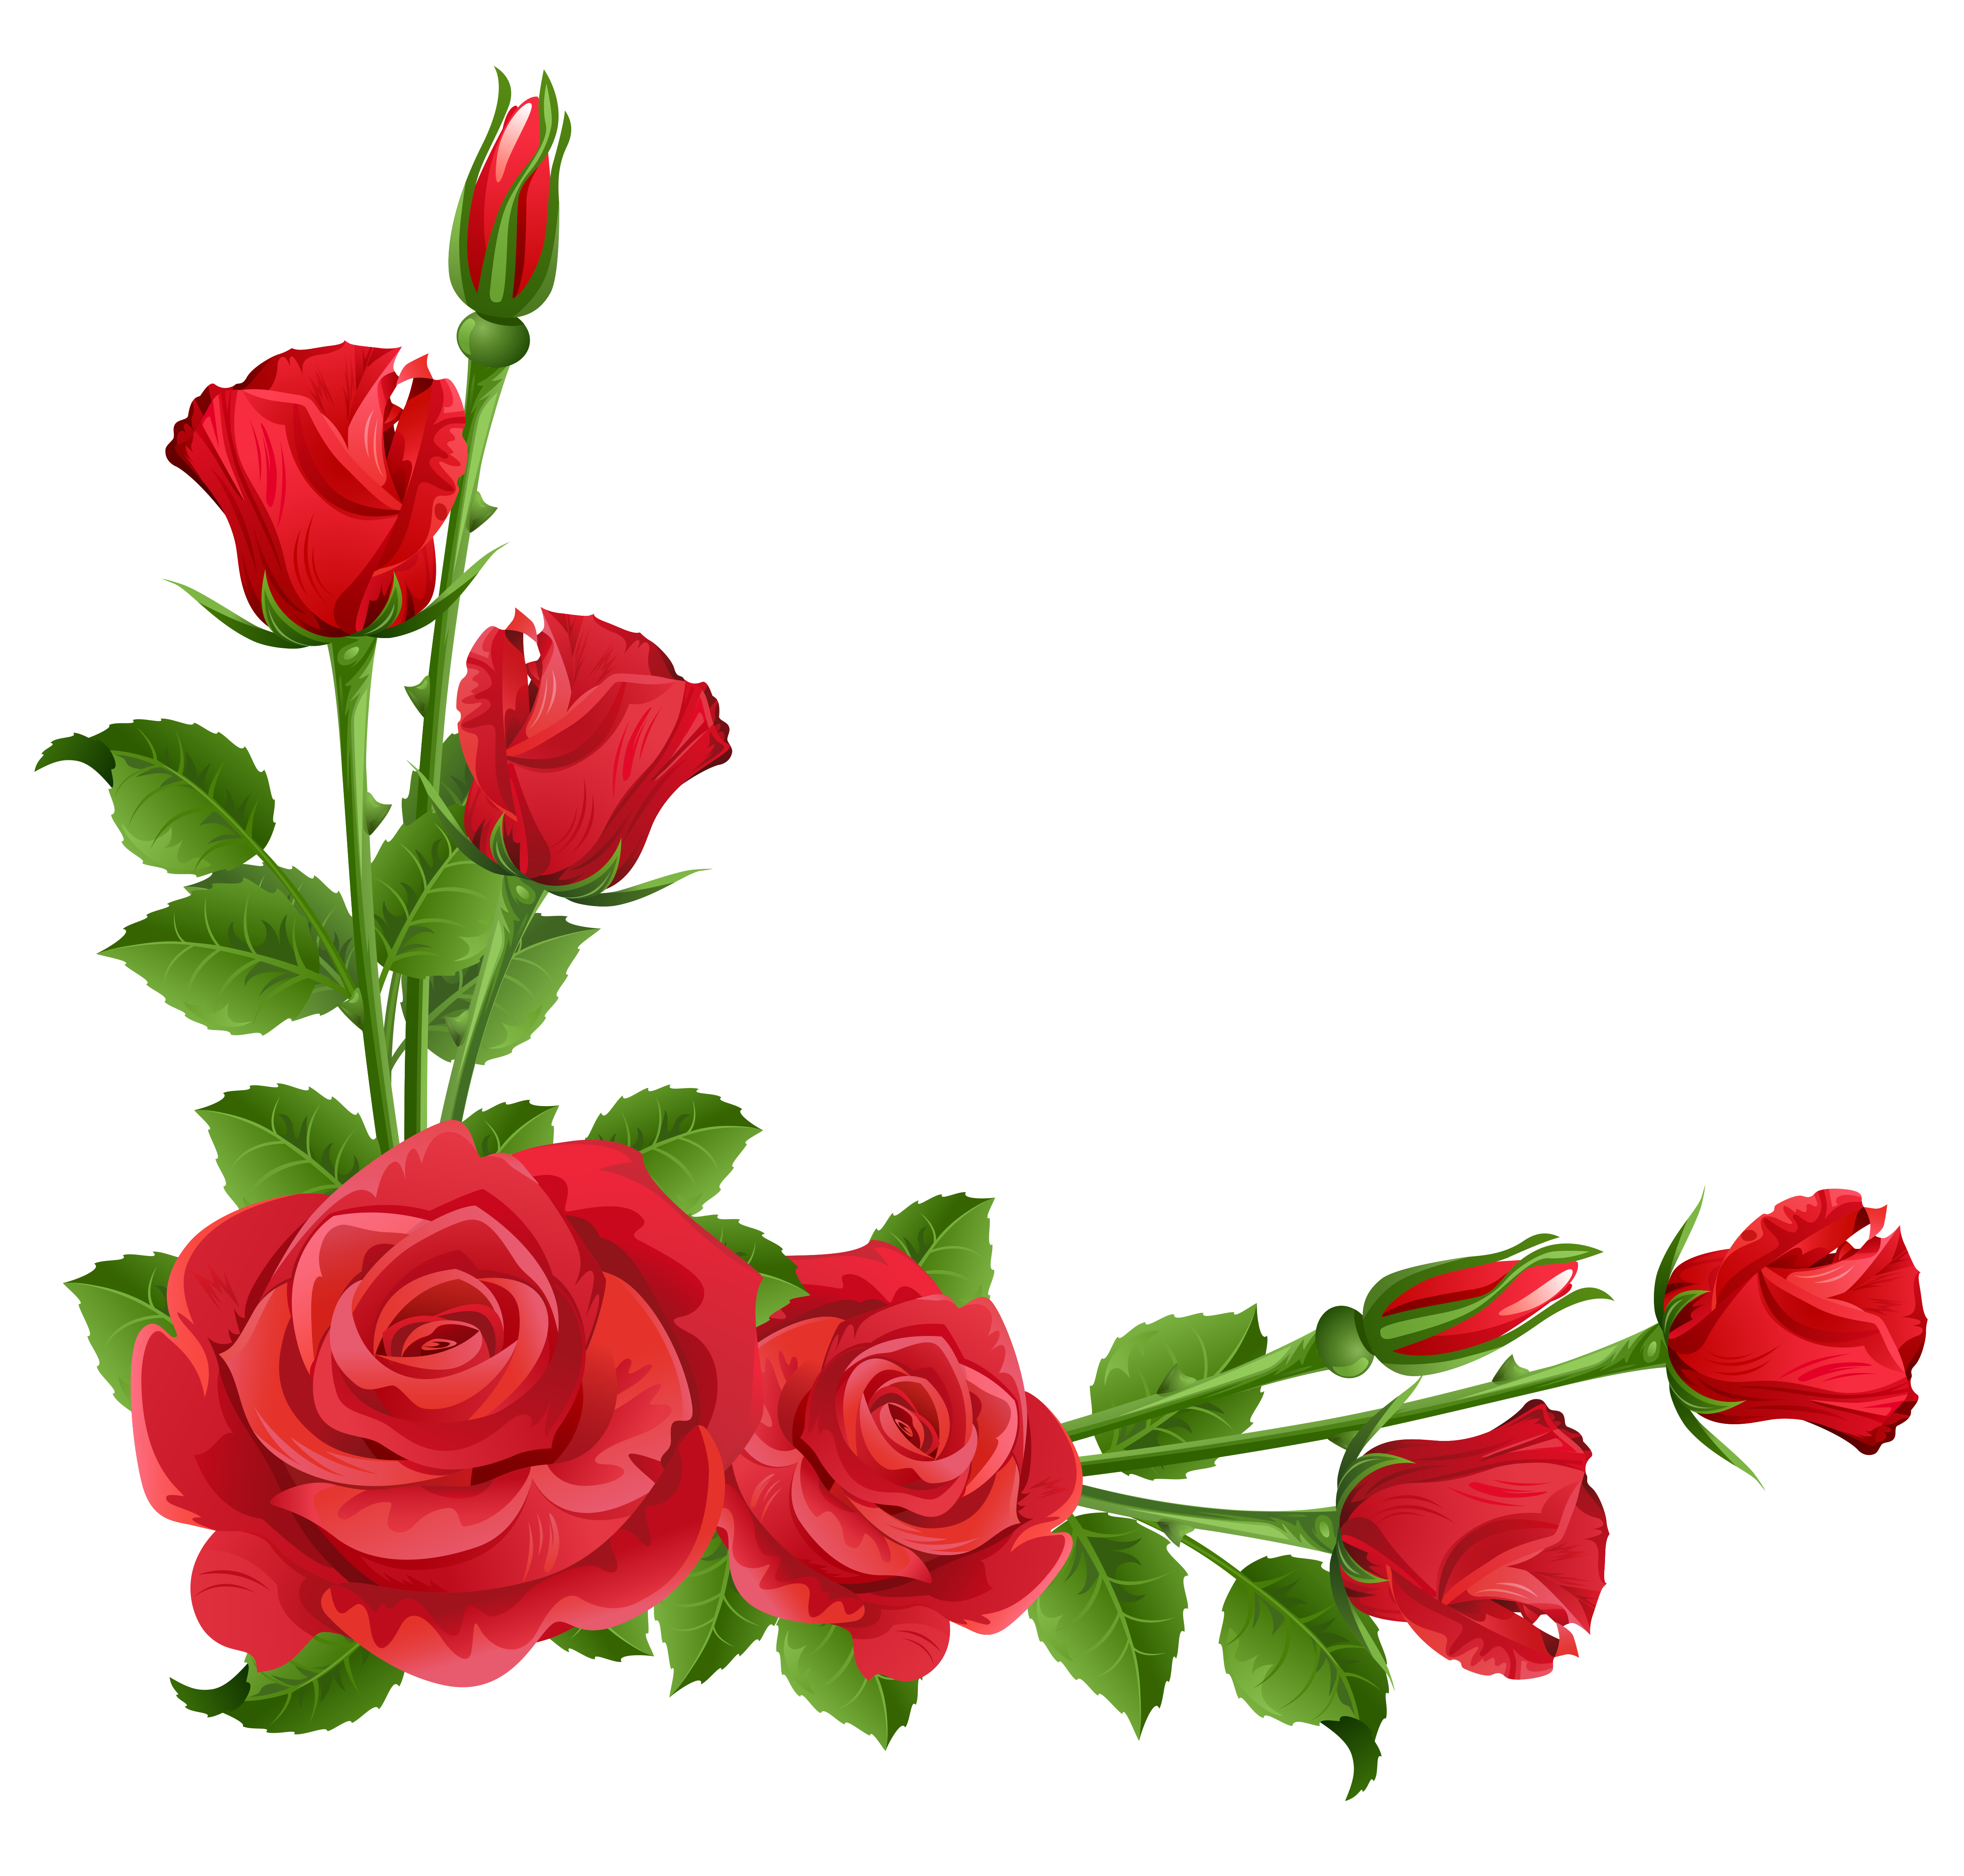 Red roses transparent png. Boarder clipart rose